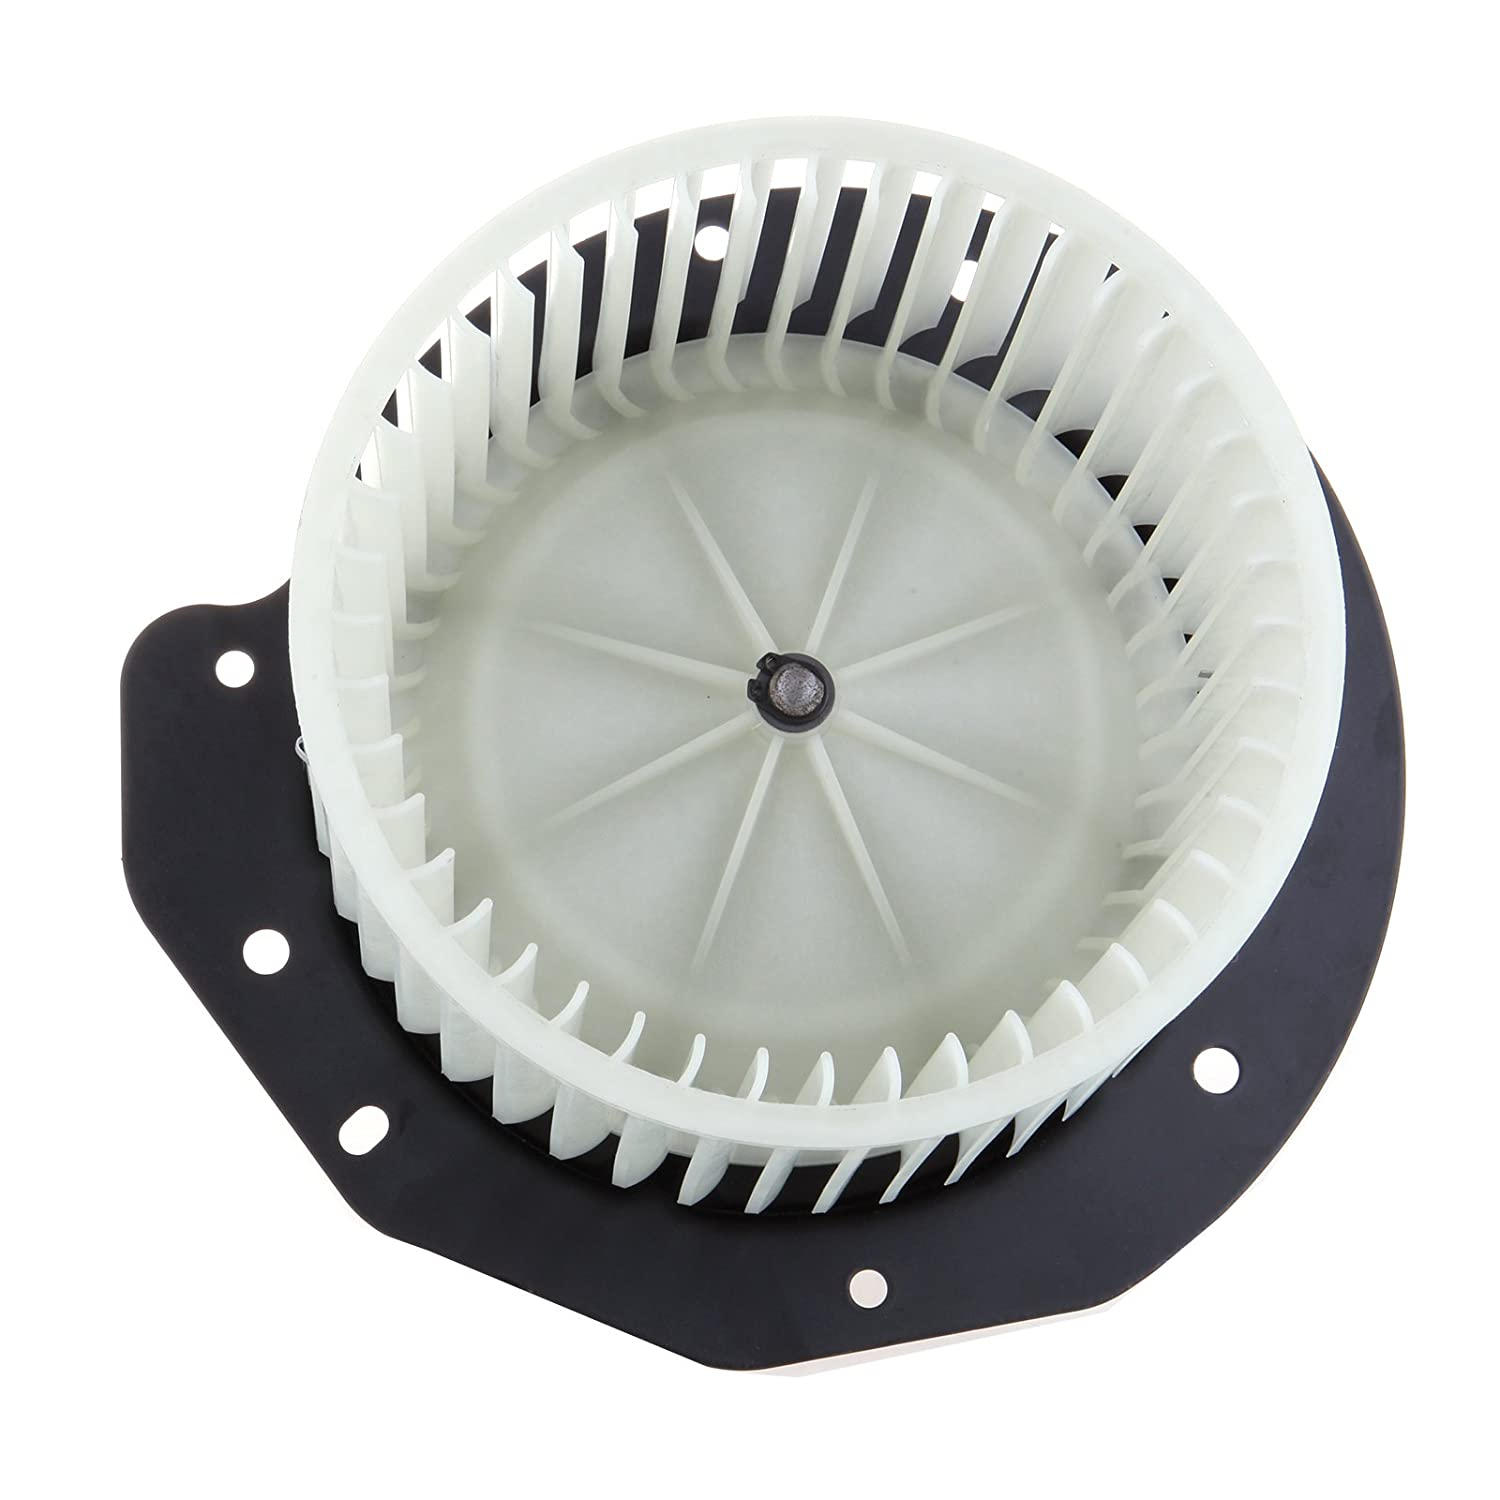 HVAC plastic Heater Blower Motor w/Fan ABS Cage ECCPP fit for 1987-1996 Ford Bronco /1988-1997 Ford F Super Duty /1987-1996 Ford F-150/1987-1996 Ford F-250/1987-1996 Ford F-350 058394-5211-1619311